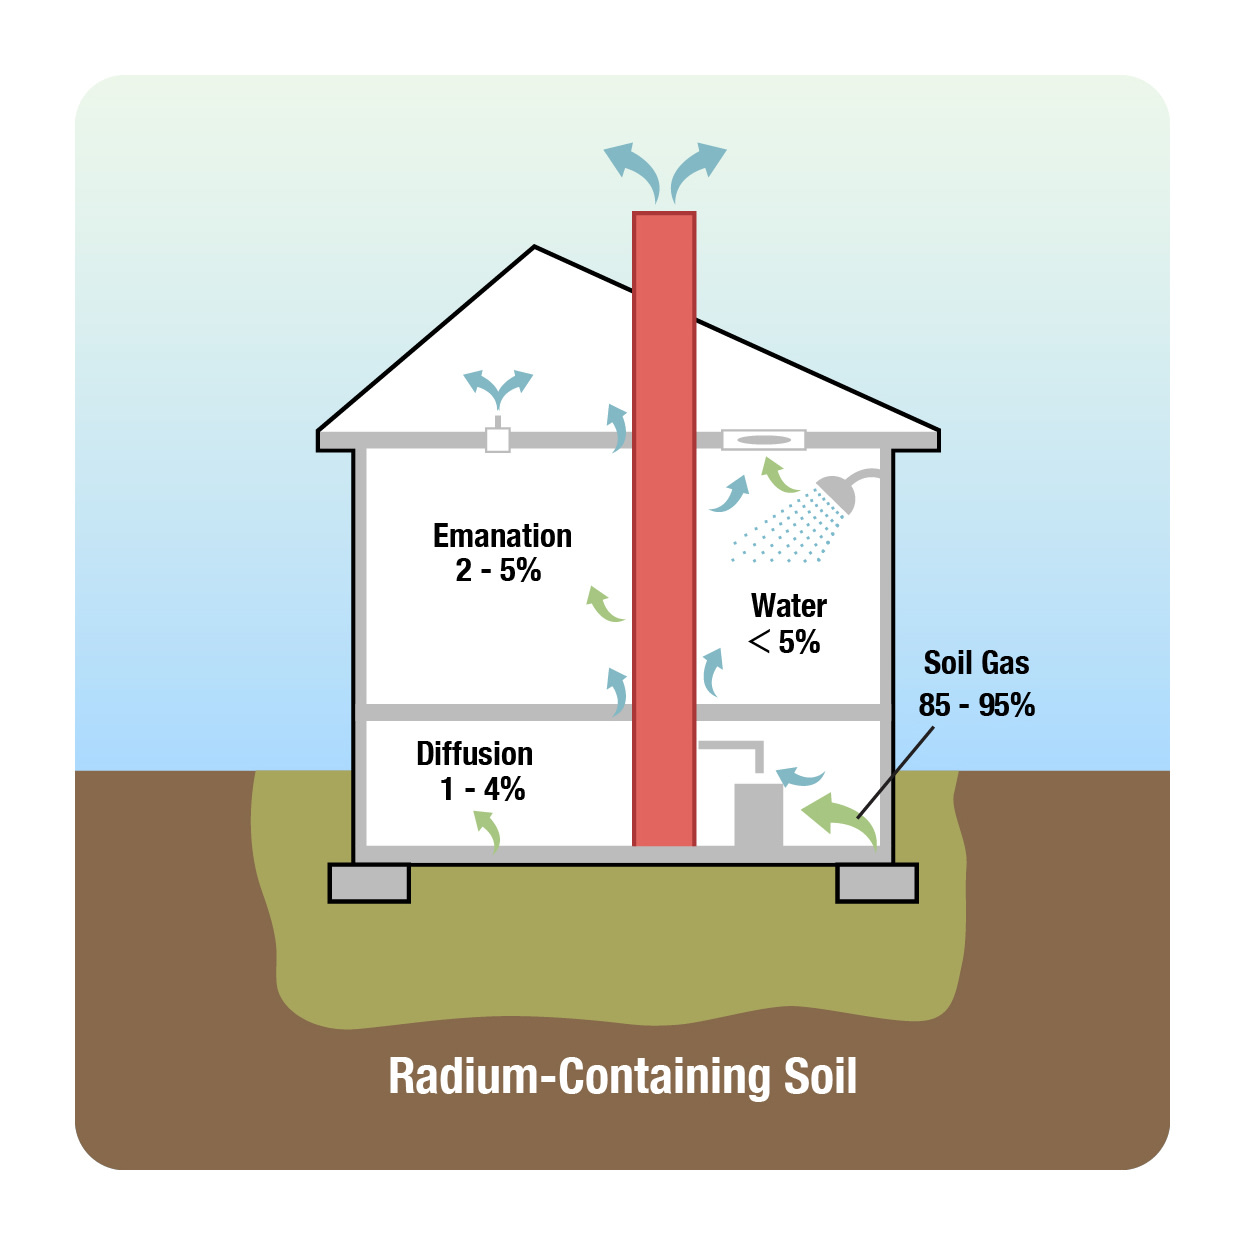 The illustration shows the sources of radon that can accumulate in a home.